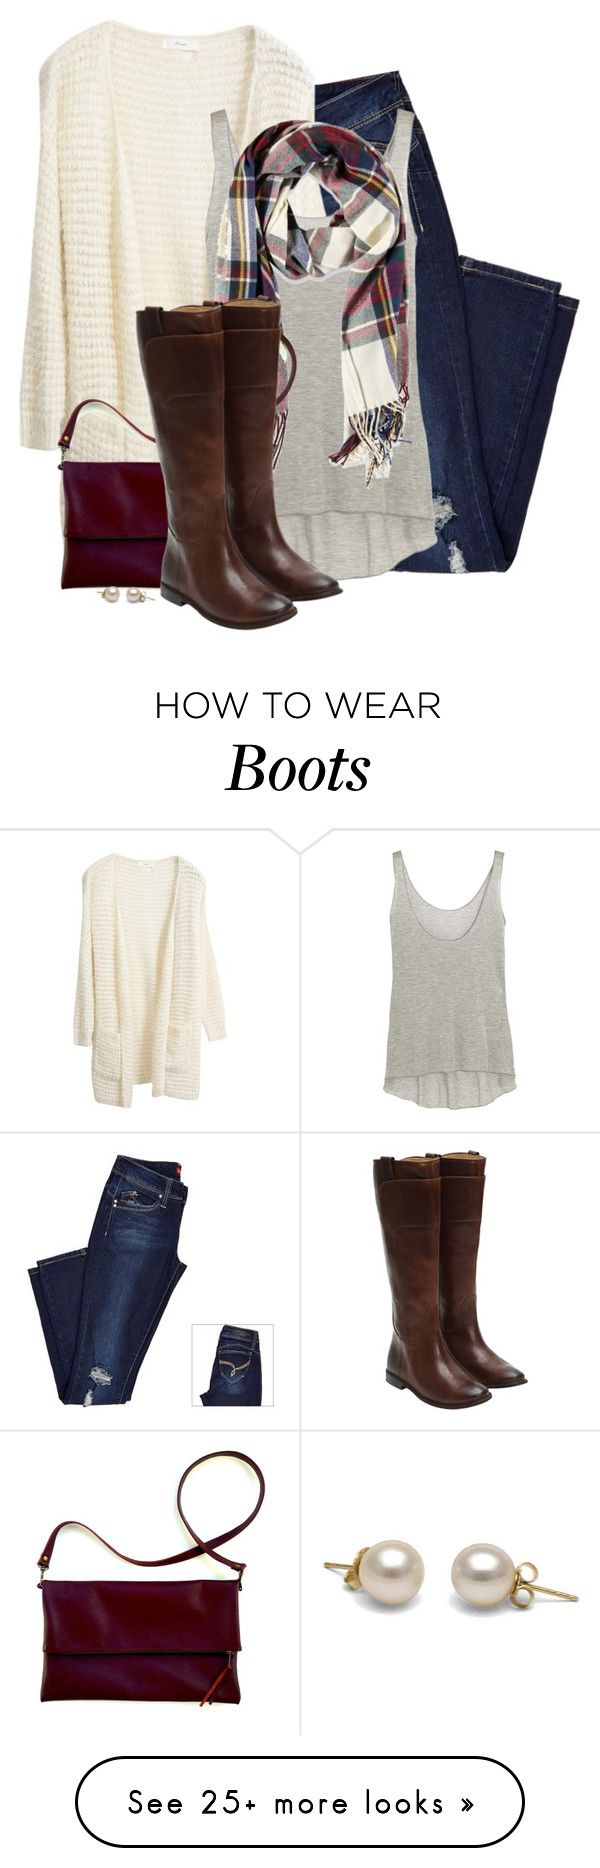 """Long cream cardigan, plaid scarf & boots"" by steffiestaffie on Polyvore featuring Enza Costa, Forever 21 and Frye"